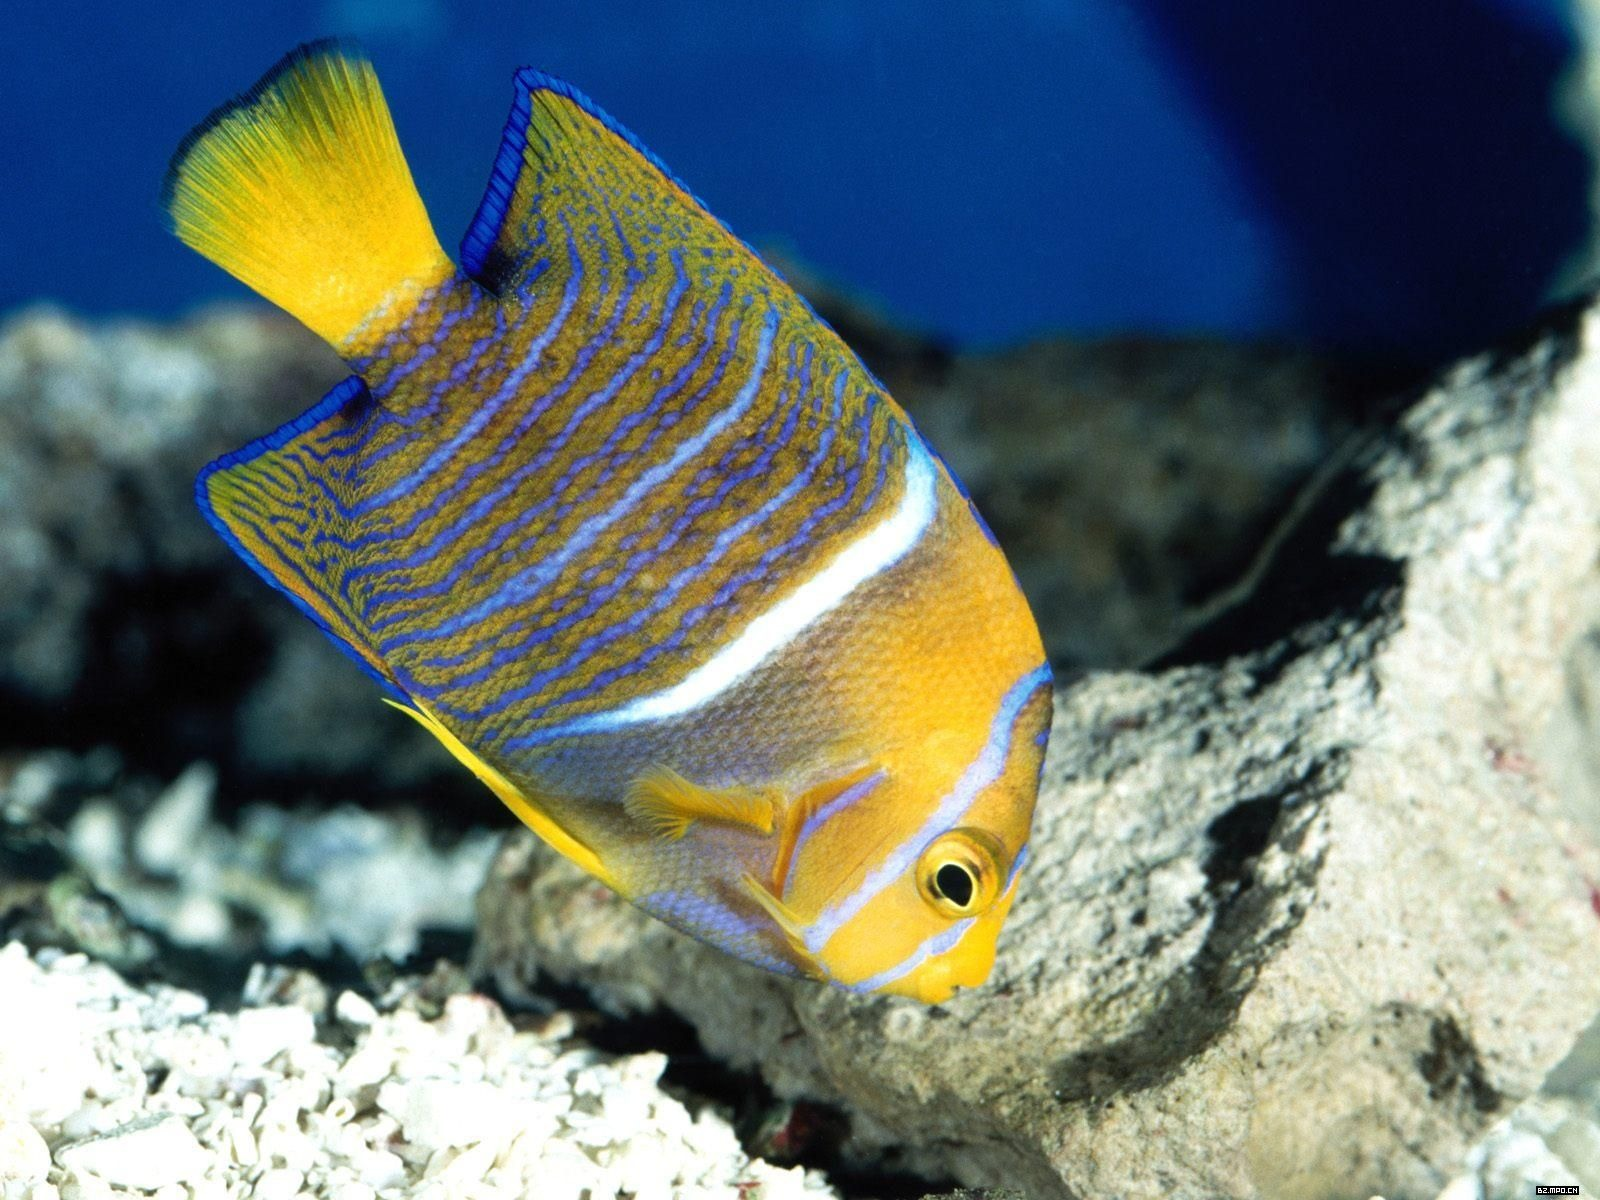 Colorful tropical fish wallpaper albums 4 1600x1200 for Colorful tropical fish